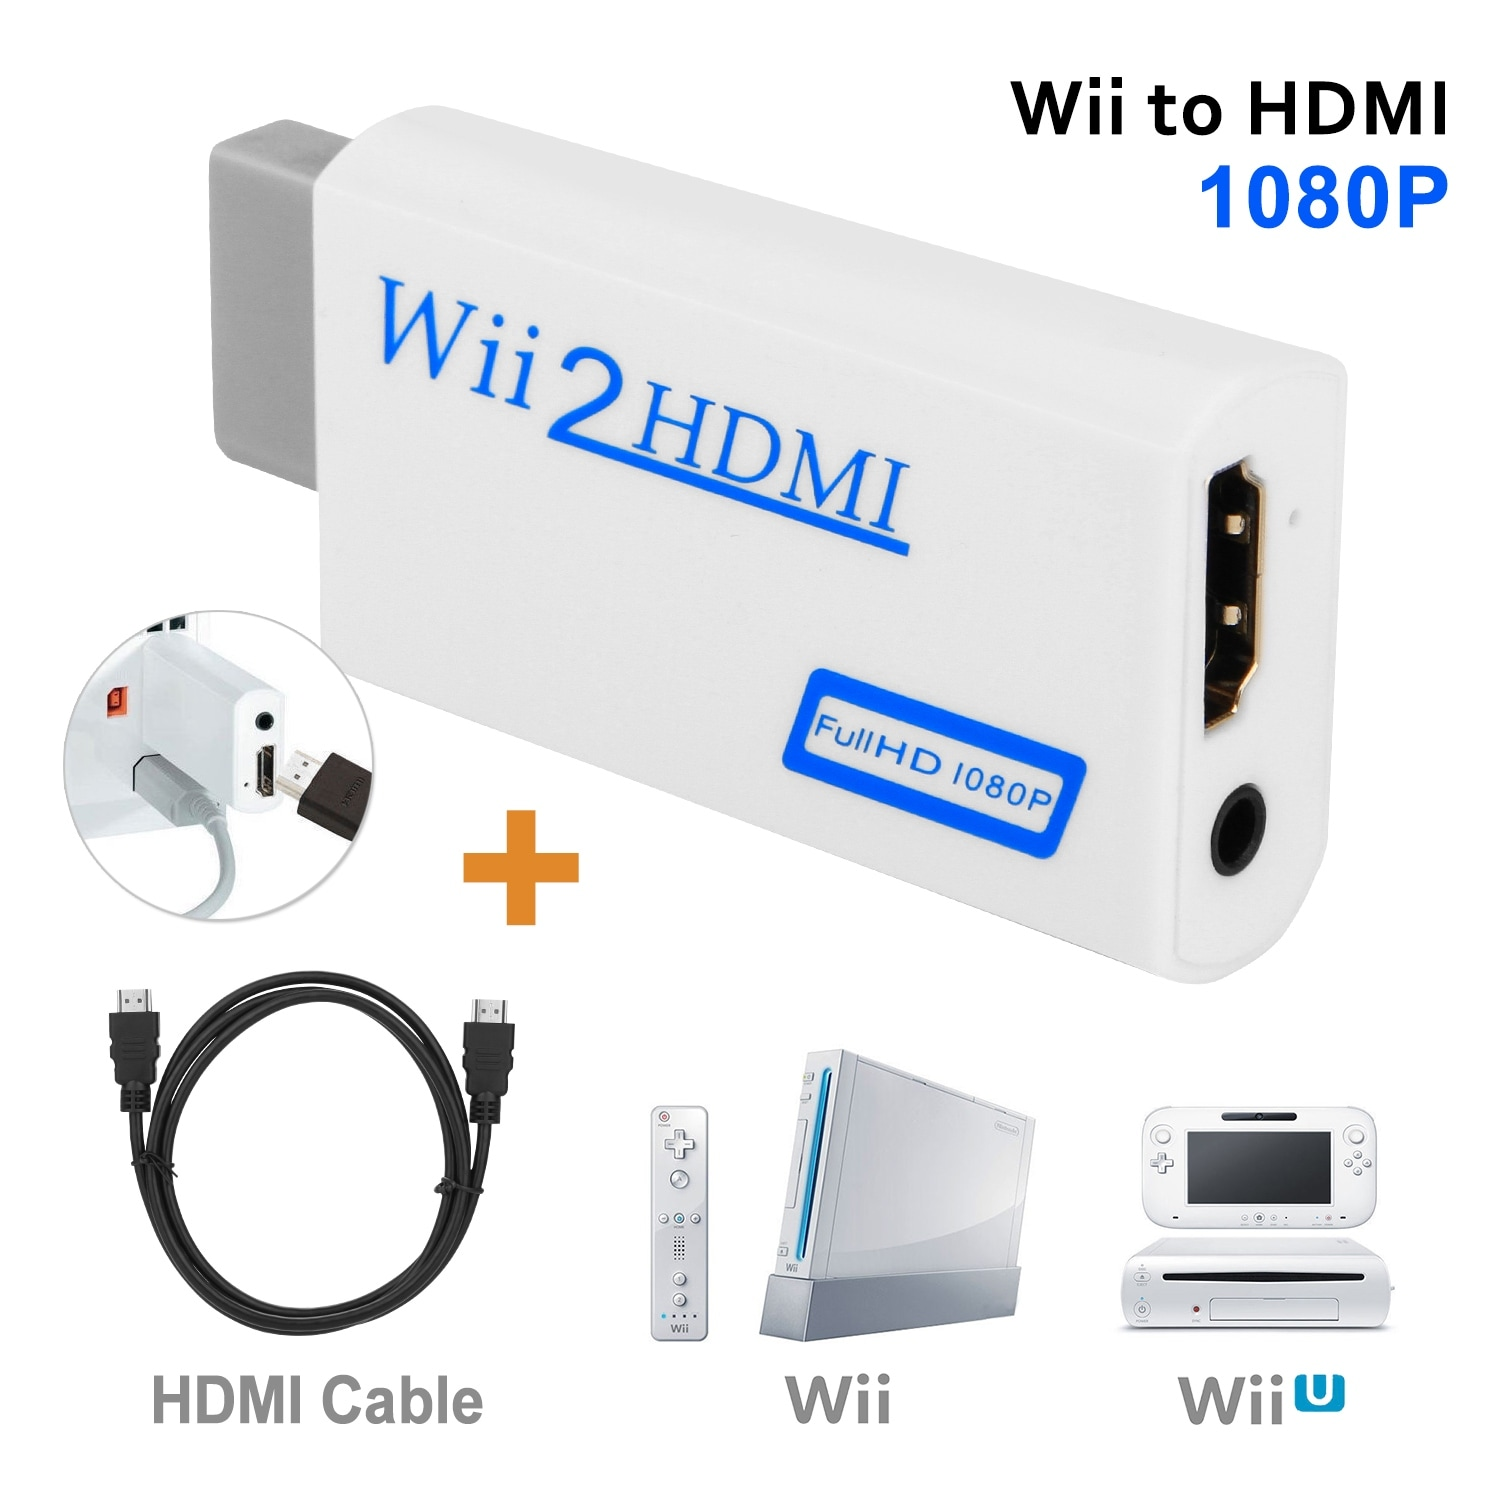 AGPtek Wii To HDMI 720P 1080P Converter Adapter Full HD Video + HDMI Cable 1.5M -  Overstock